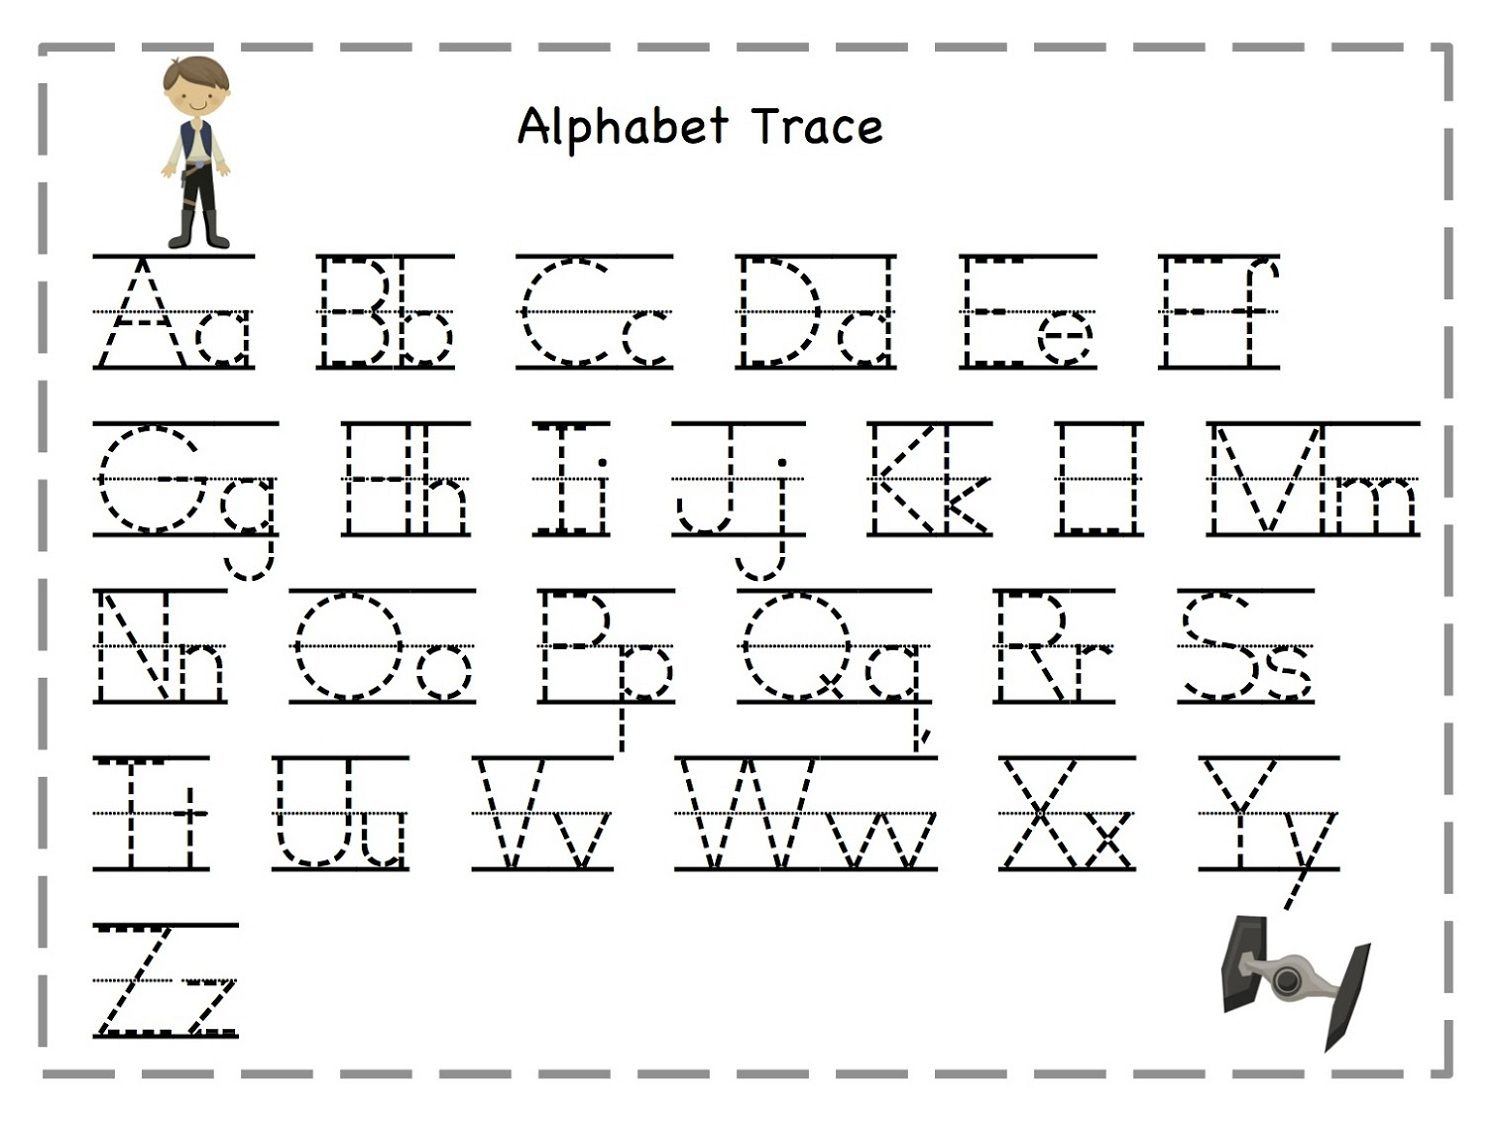 worksheet Tracing Letter Worksheets tracing letters for kids activities pinterest today our site present a new post about your little child can do practice at home with wor